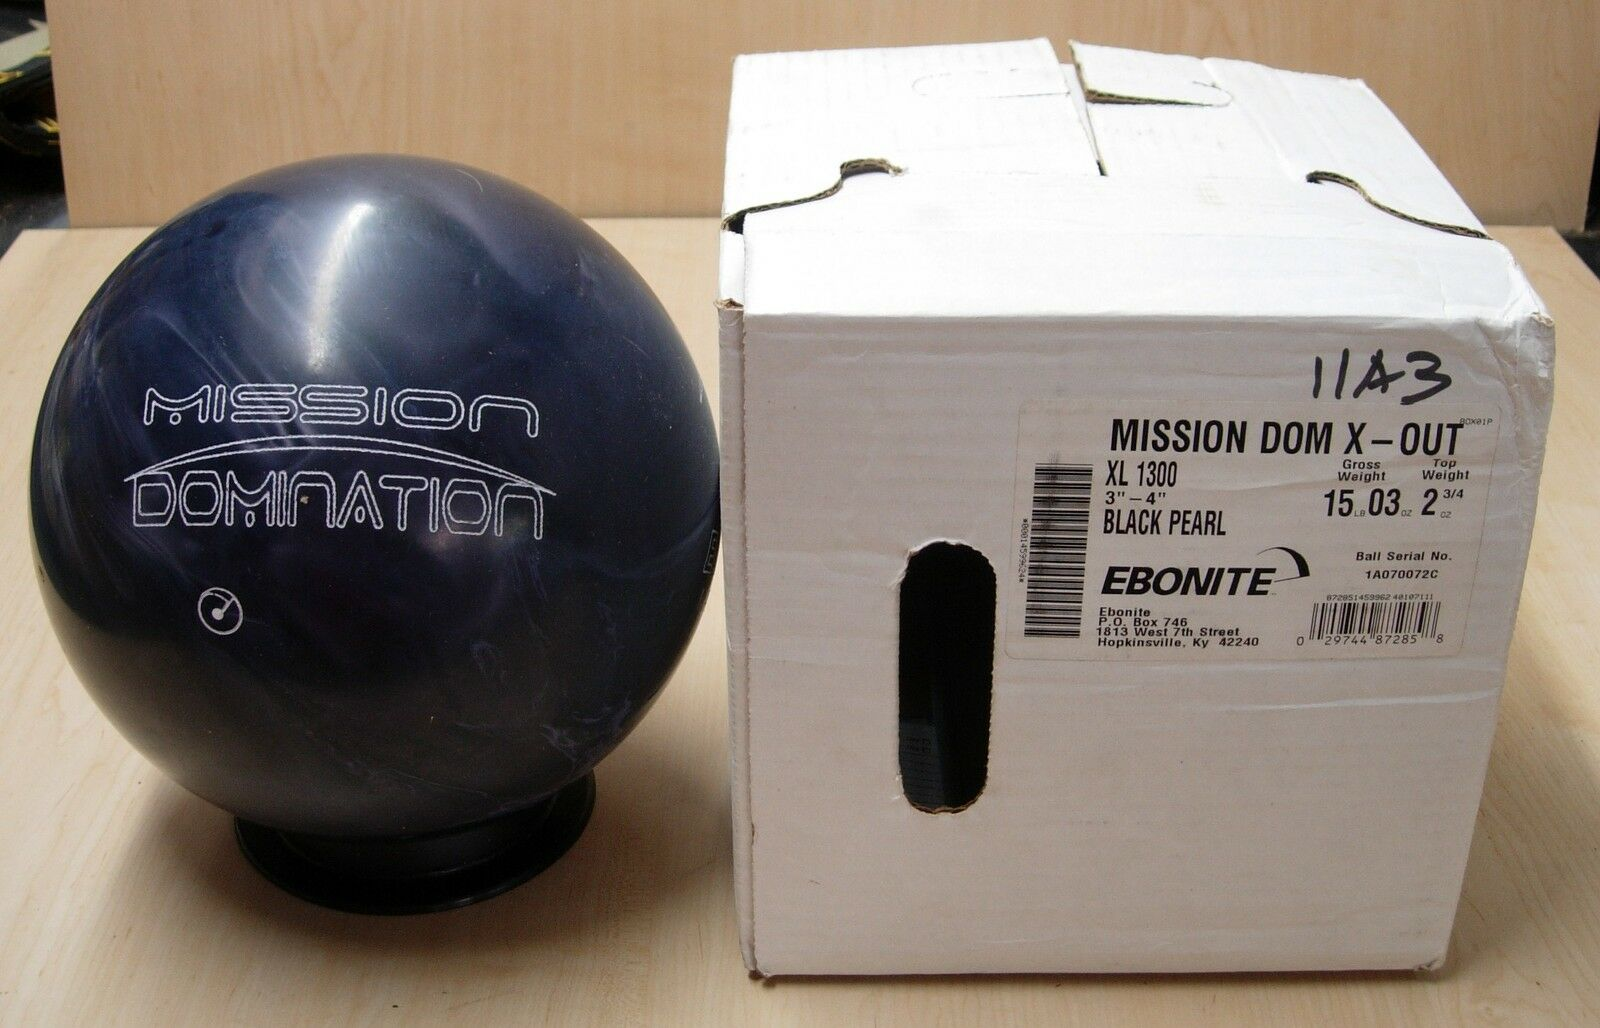 =15oz TW 2-3 4 NIB New In Box Undrilled 2011 X-OUT Ebonite Mission Domination